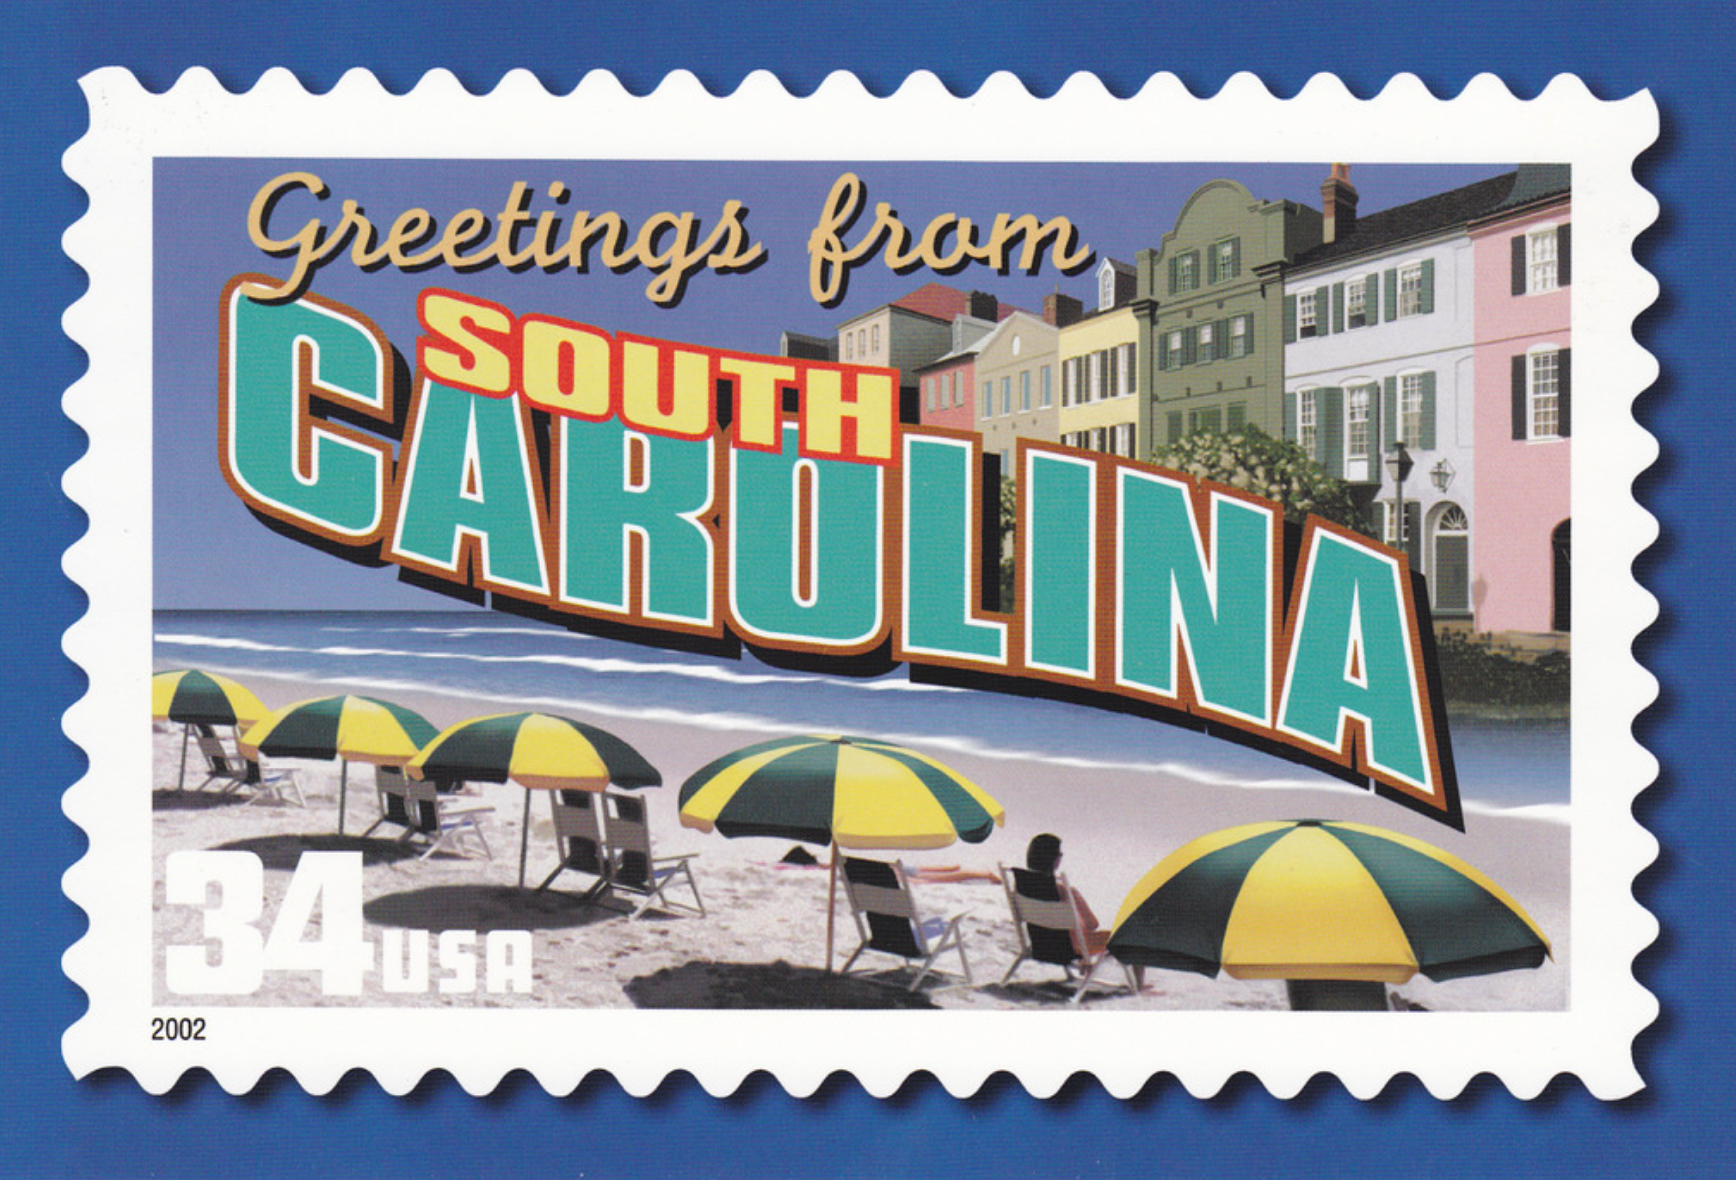 south carolina, stay fit, corporate housing, furnished, serviced, apartment, fitness, wellness